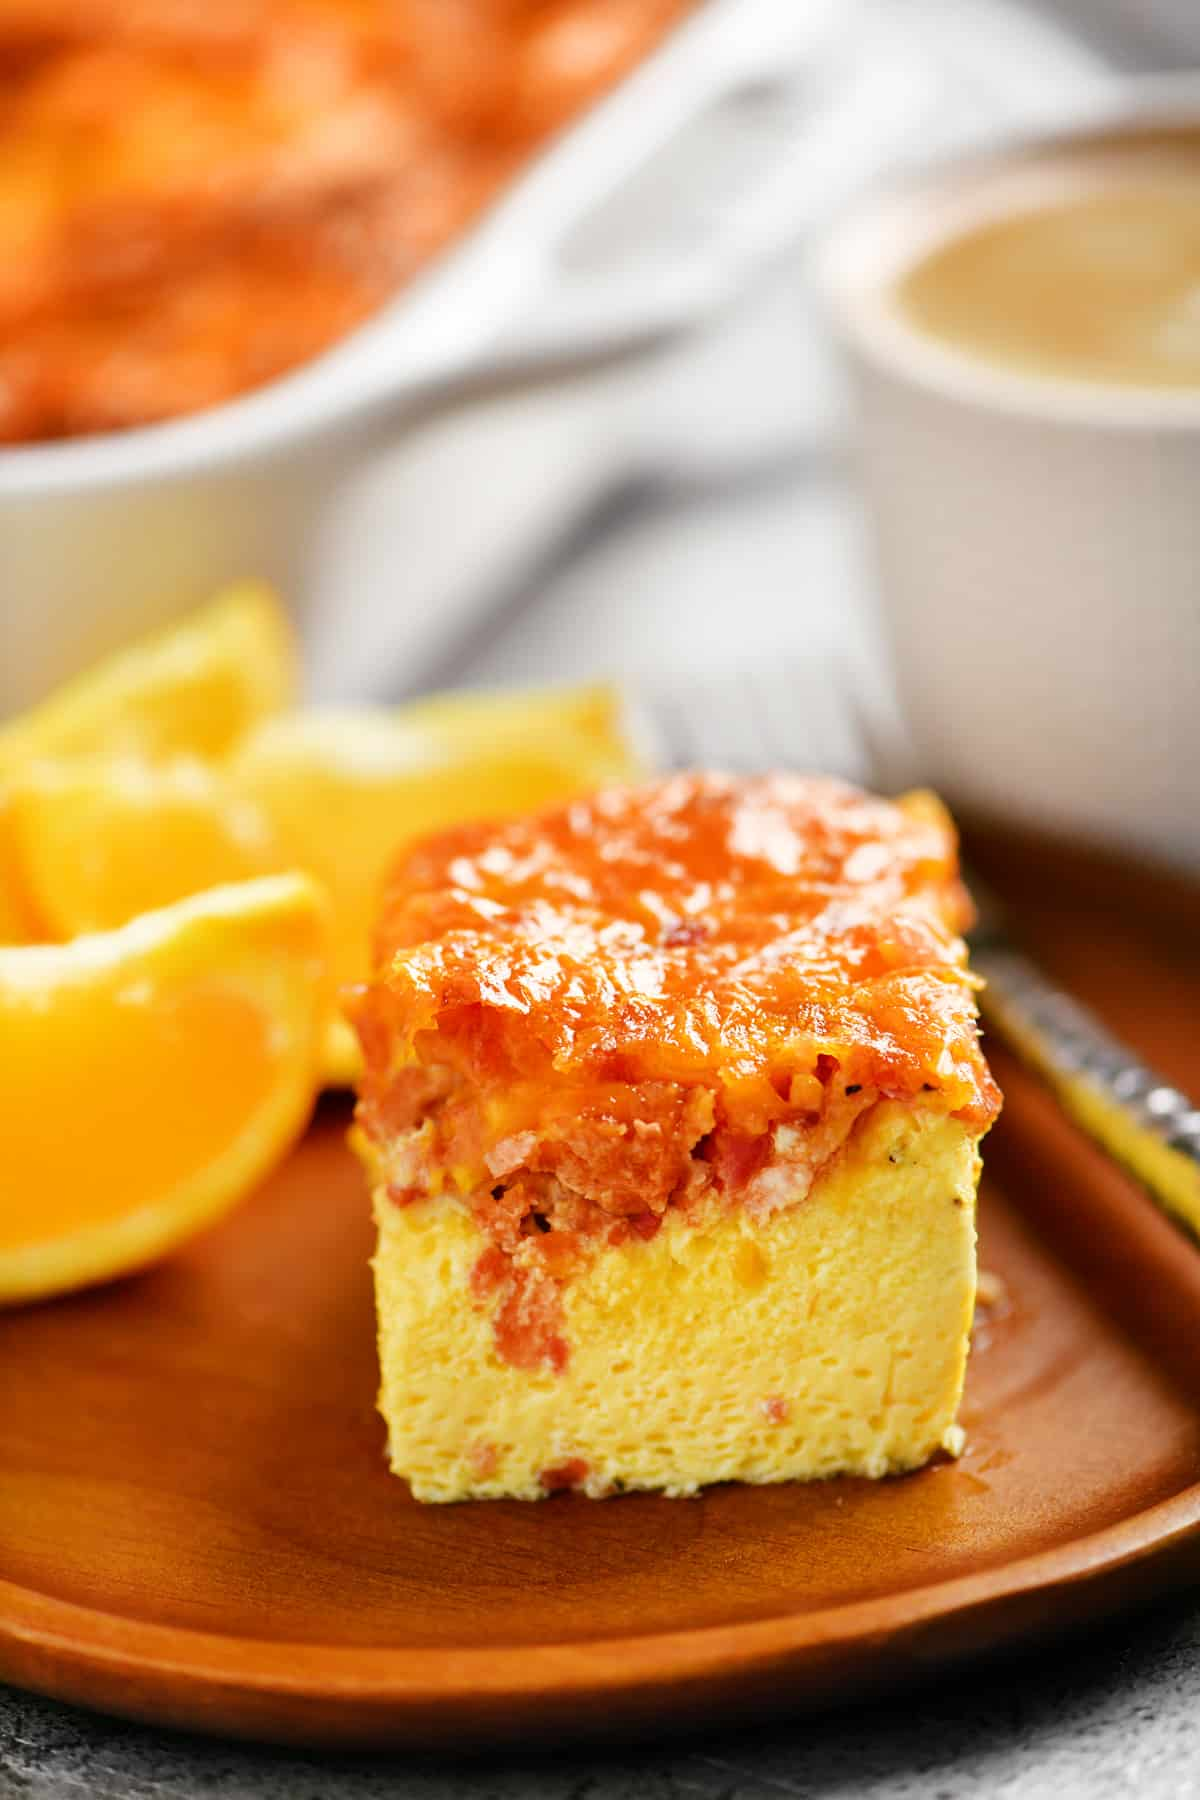 a delicious serving of egg bake with bacon and cheese